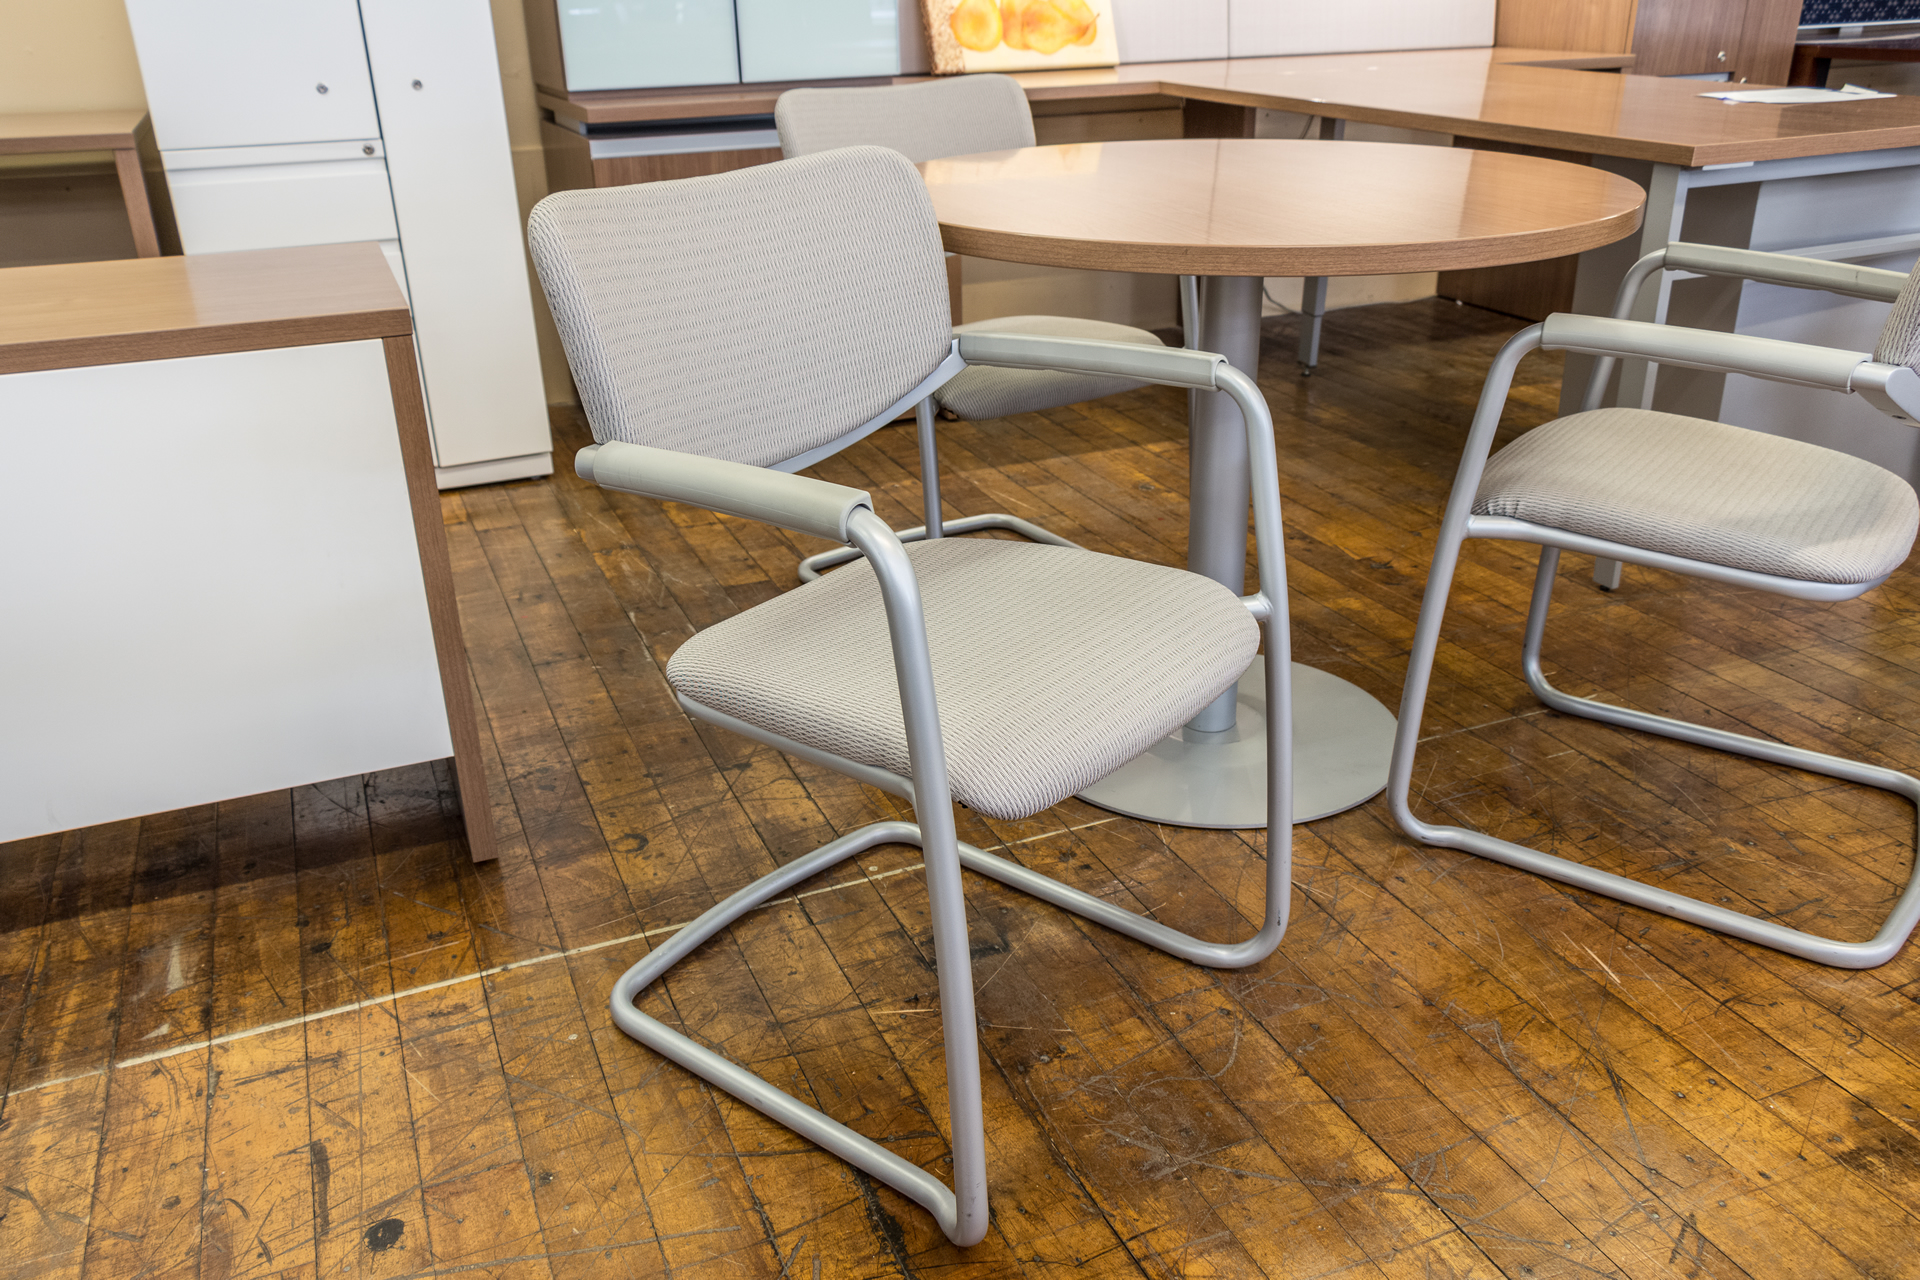 Haworth Zody Cantilever Visitors Chairs • Peartree fice Furniture